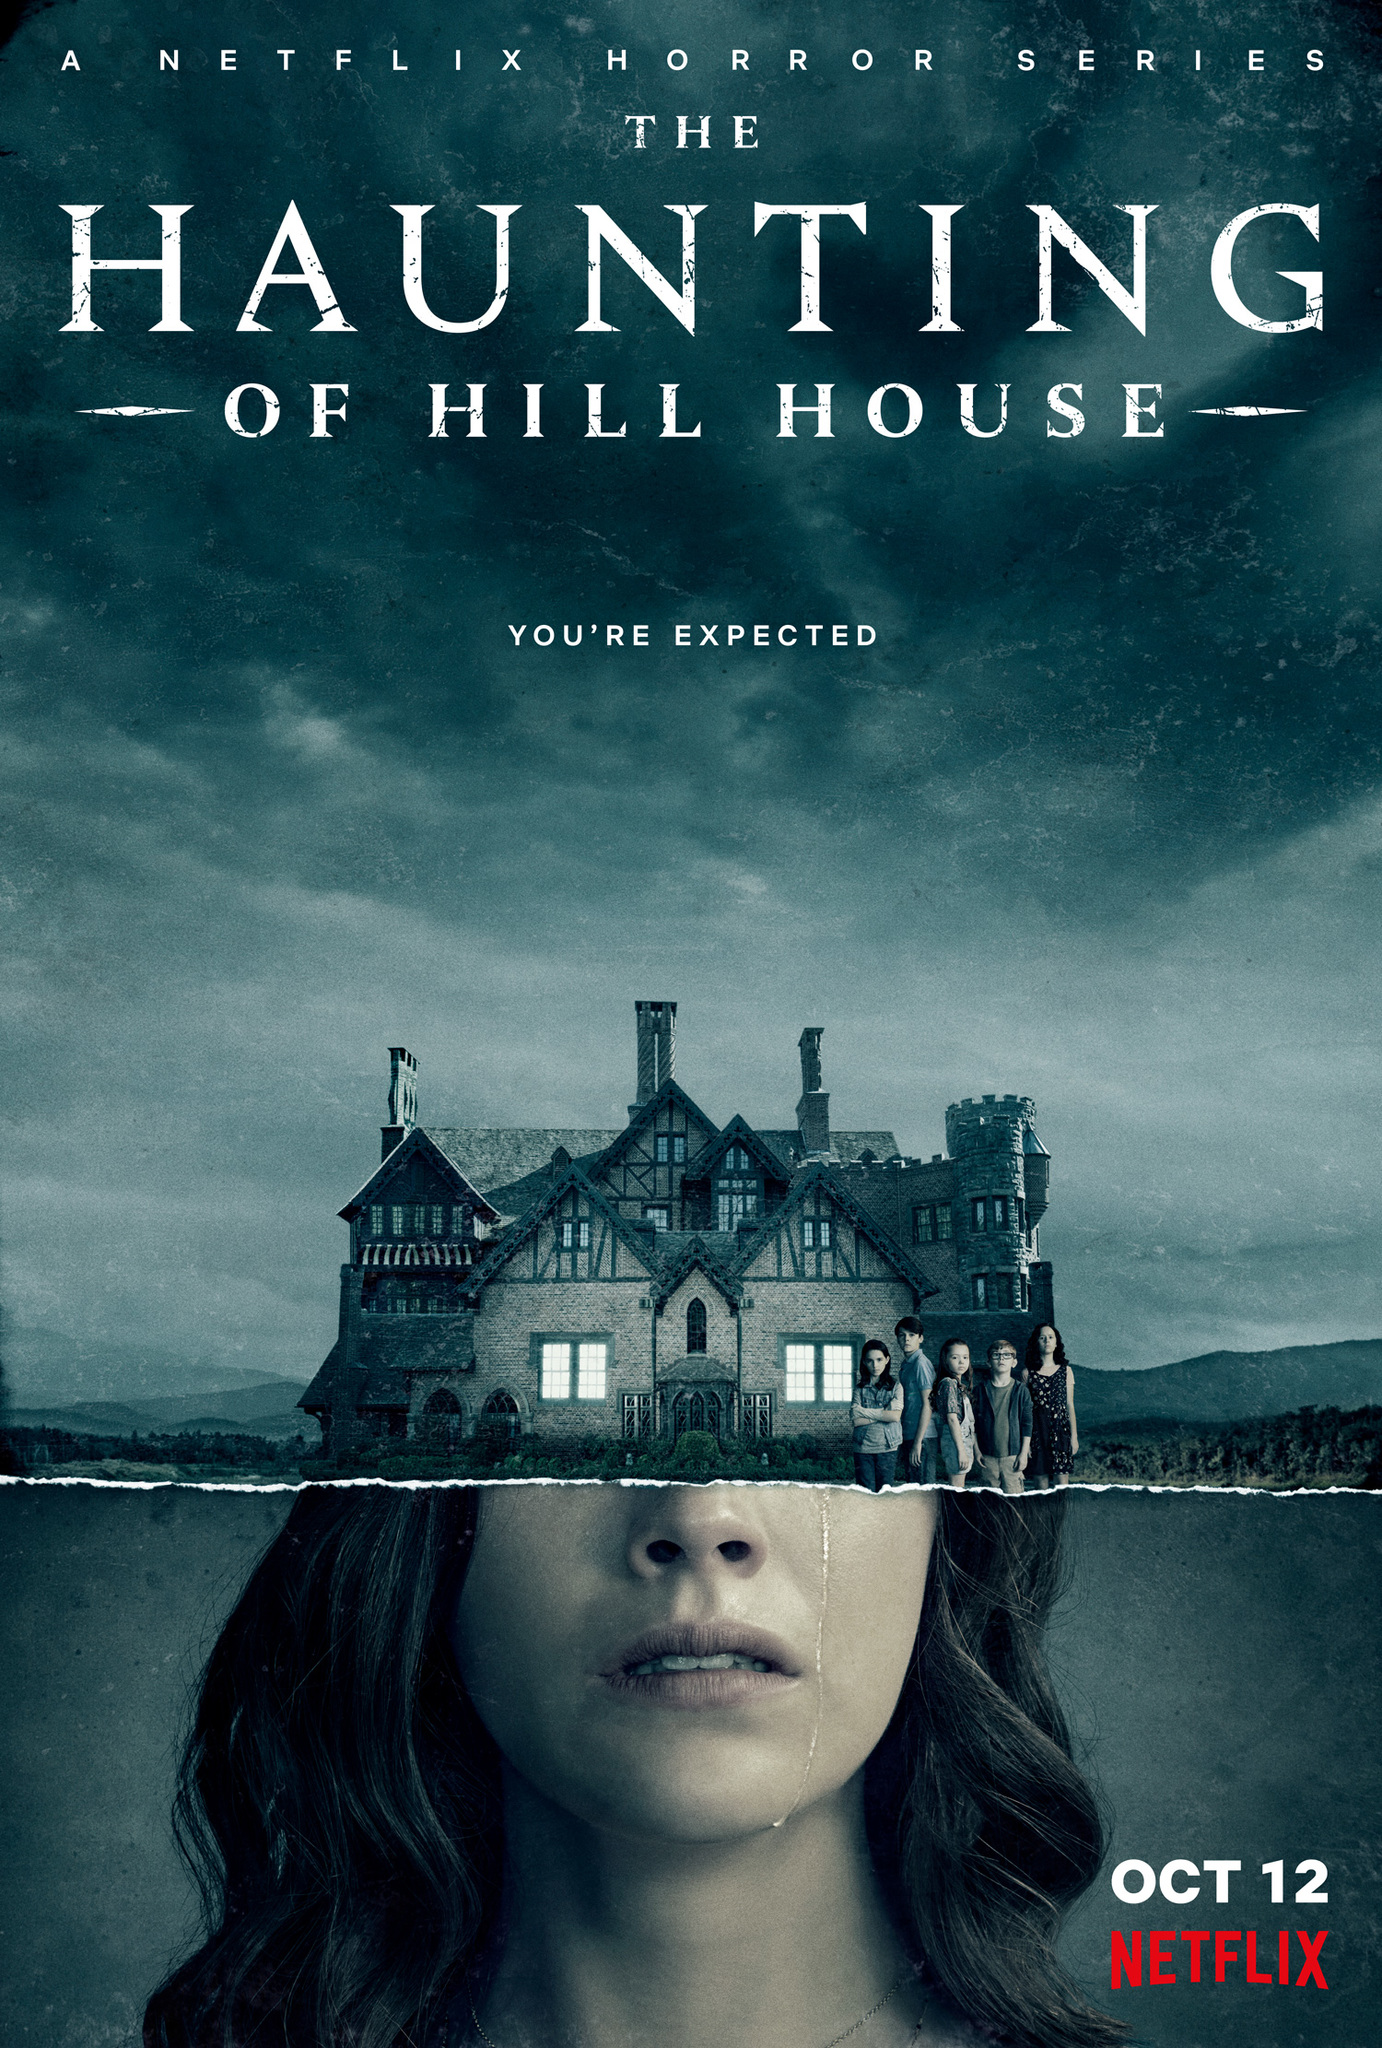 The Haunting Of Hill House review: the greatest haunted house story updated